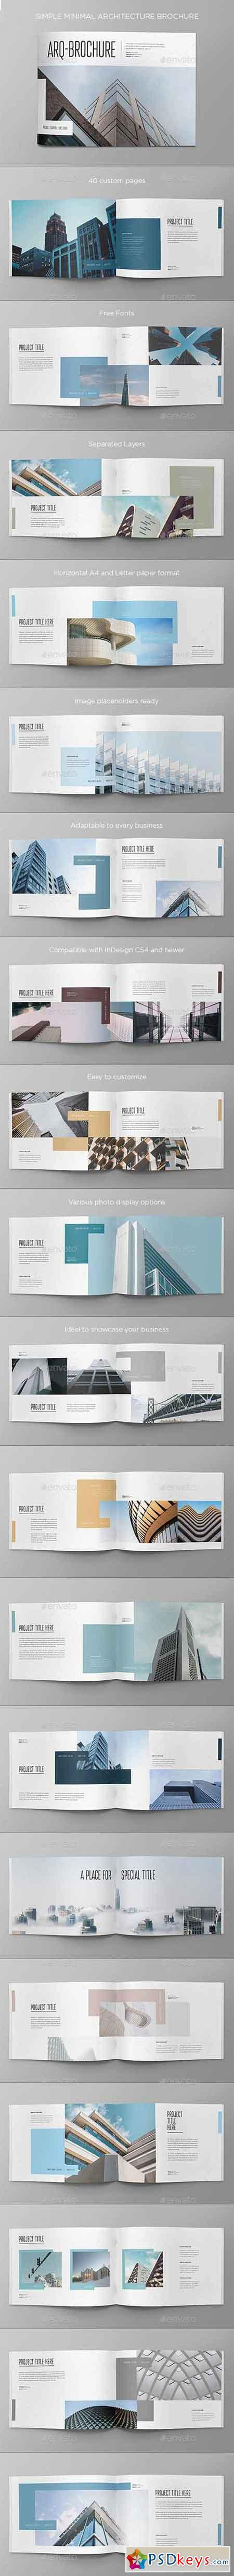 Simple Minimal Architecture Brochure 20454300